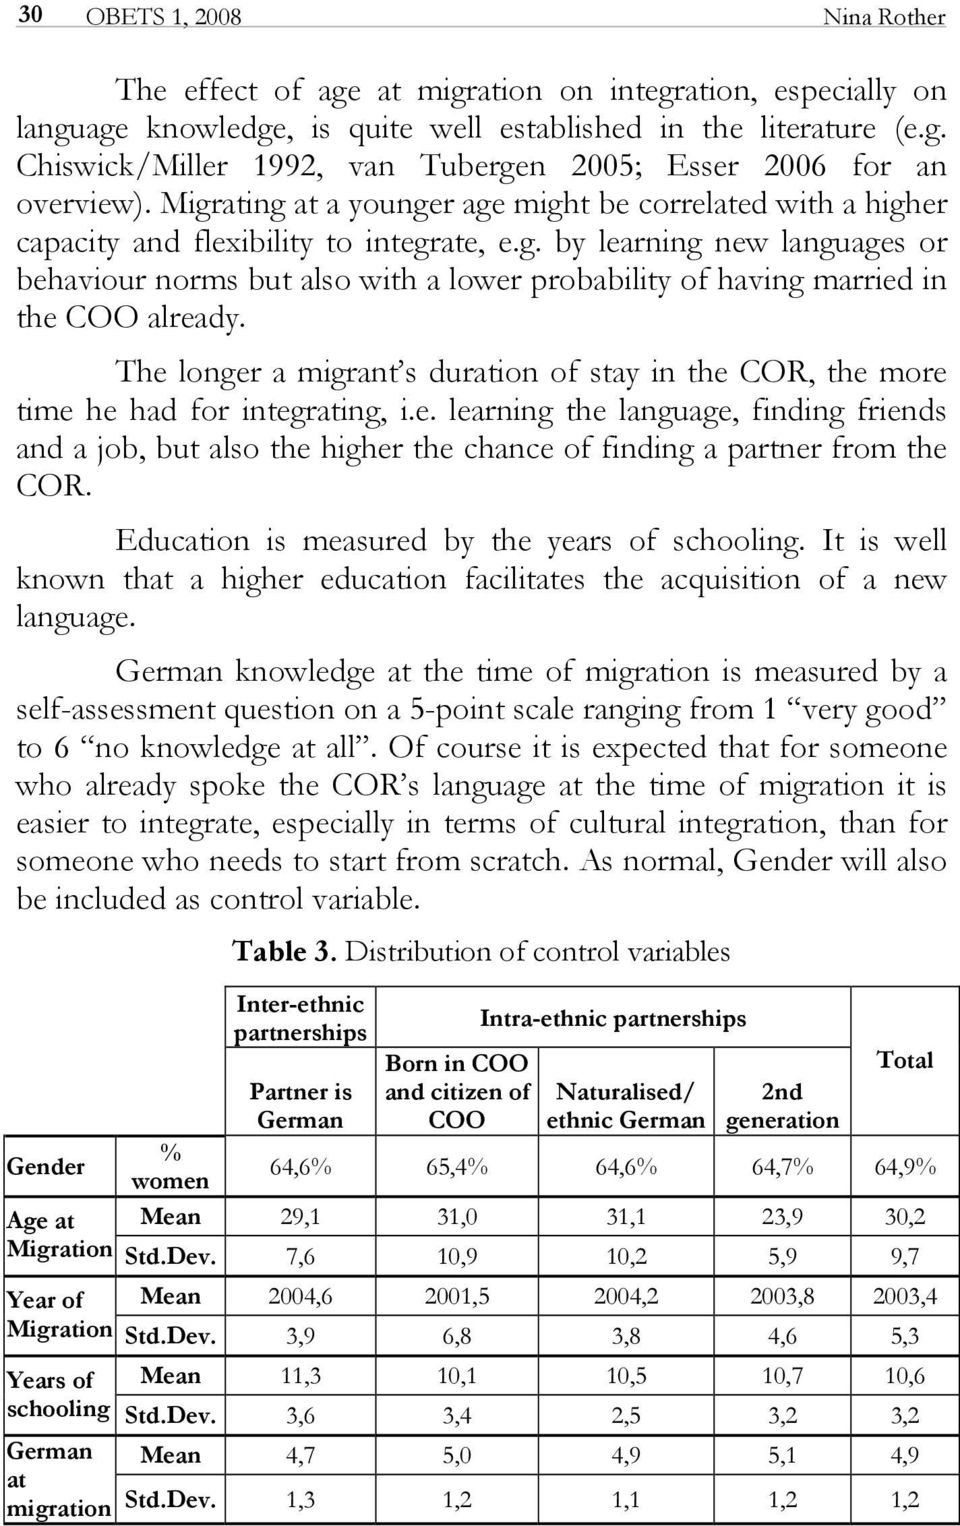 The longer a migrant s duration of stay in the COR, the more time he had for integrating, i.e. learning the language, finding friends and a job, but also the higher the chance of finding a partner from the COR.